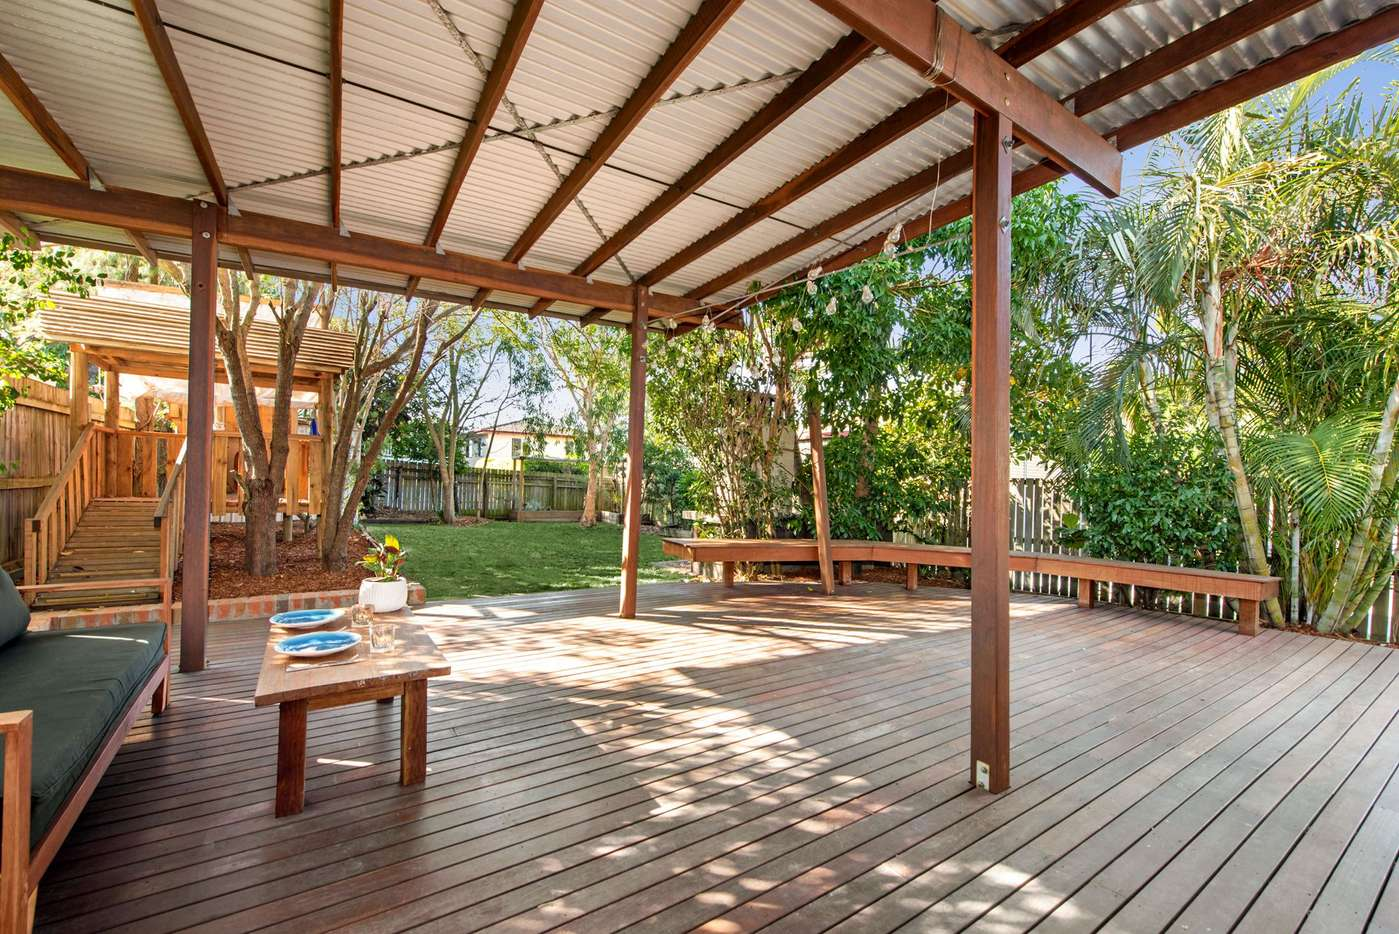 Main view of Homely house listing, 15 Price Street, Oxley, QLD 4075